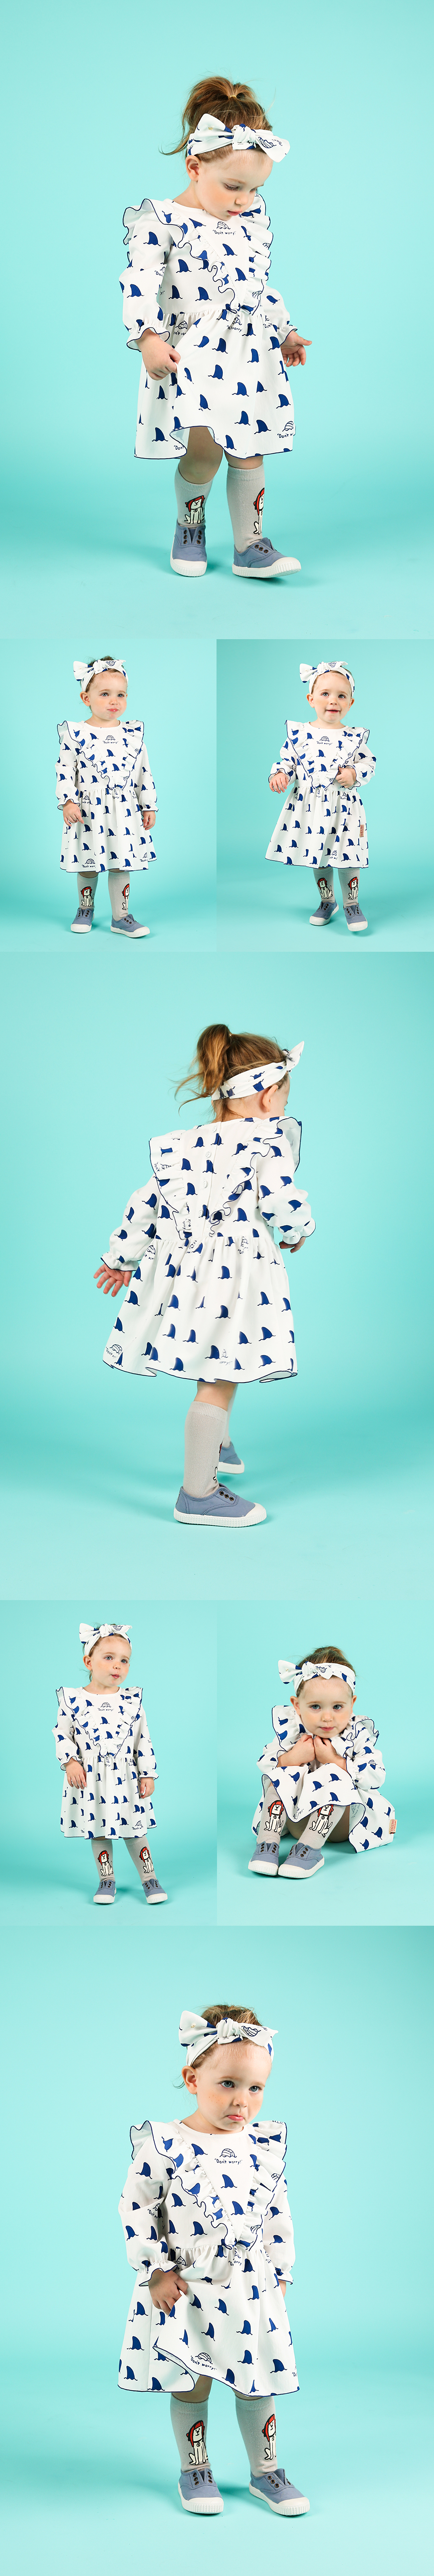 Multi shark baby ruffle dress 상세 이미지